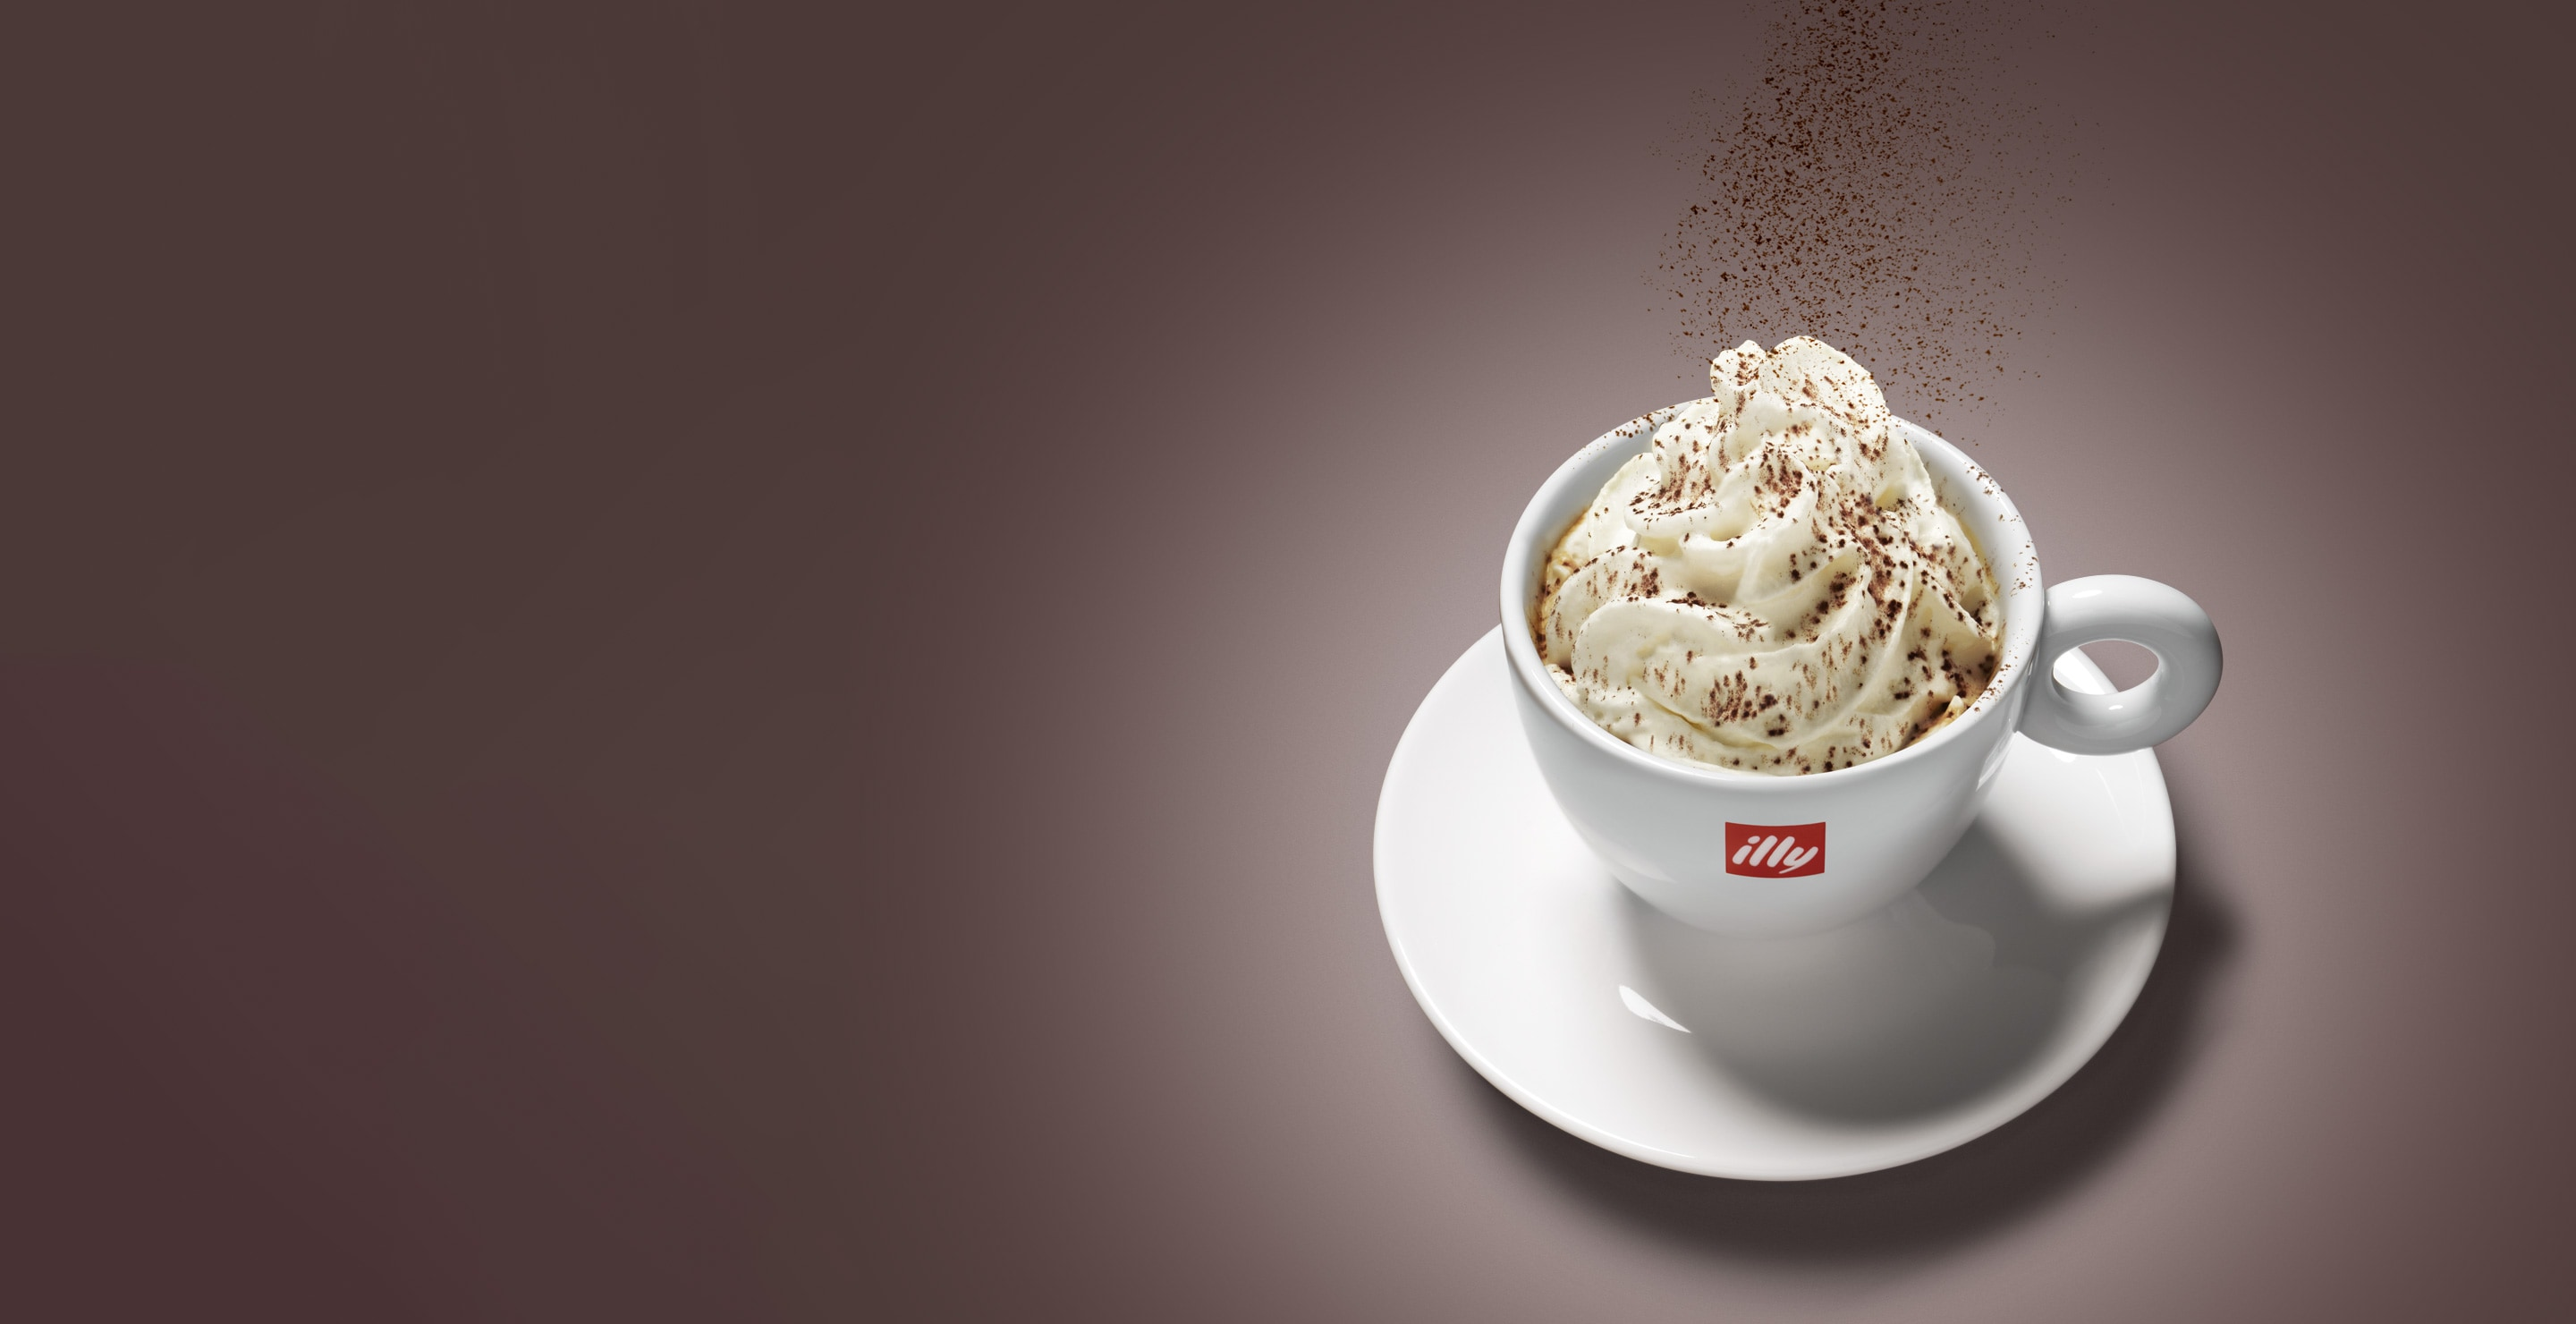 Cappuccino viennese illy